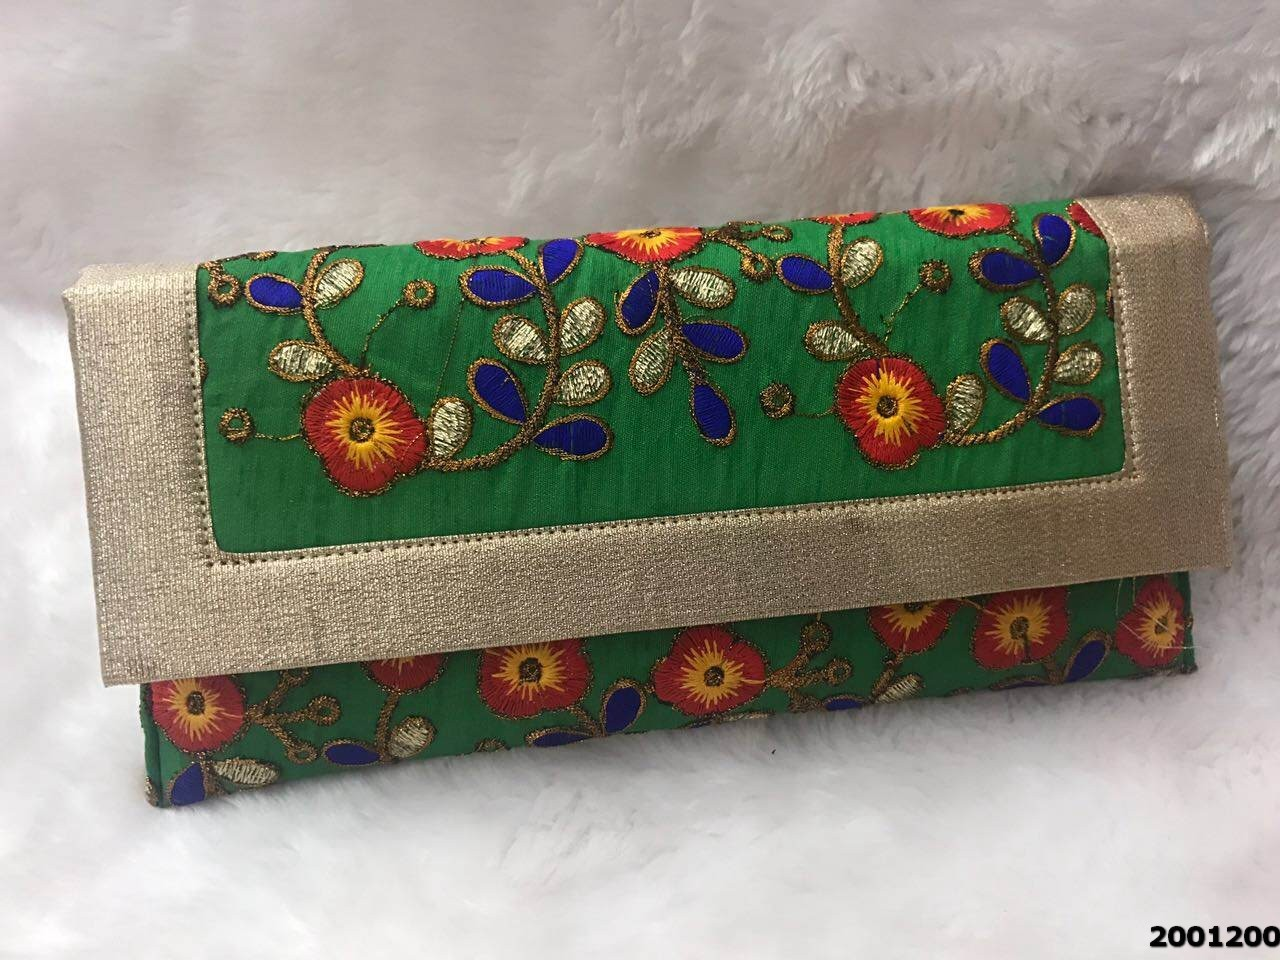 Stunning And Stylish Brocade Evening Clutch Bag